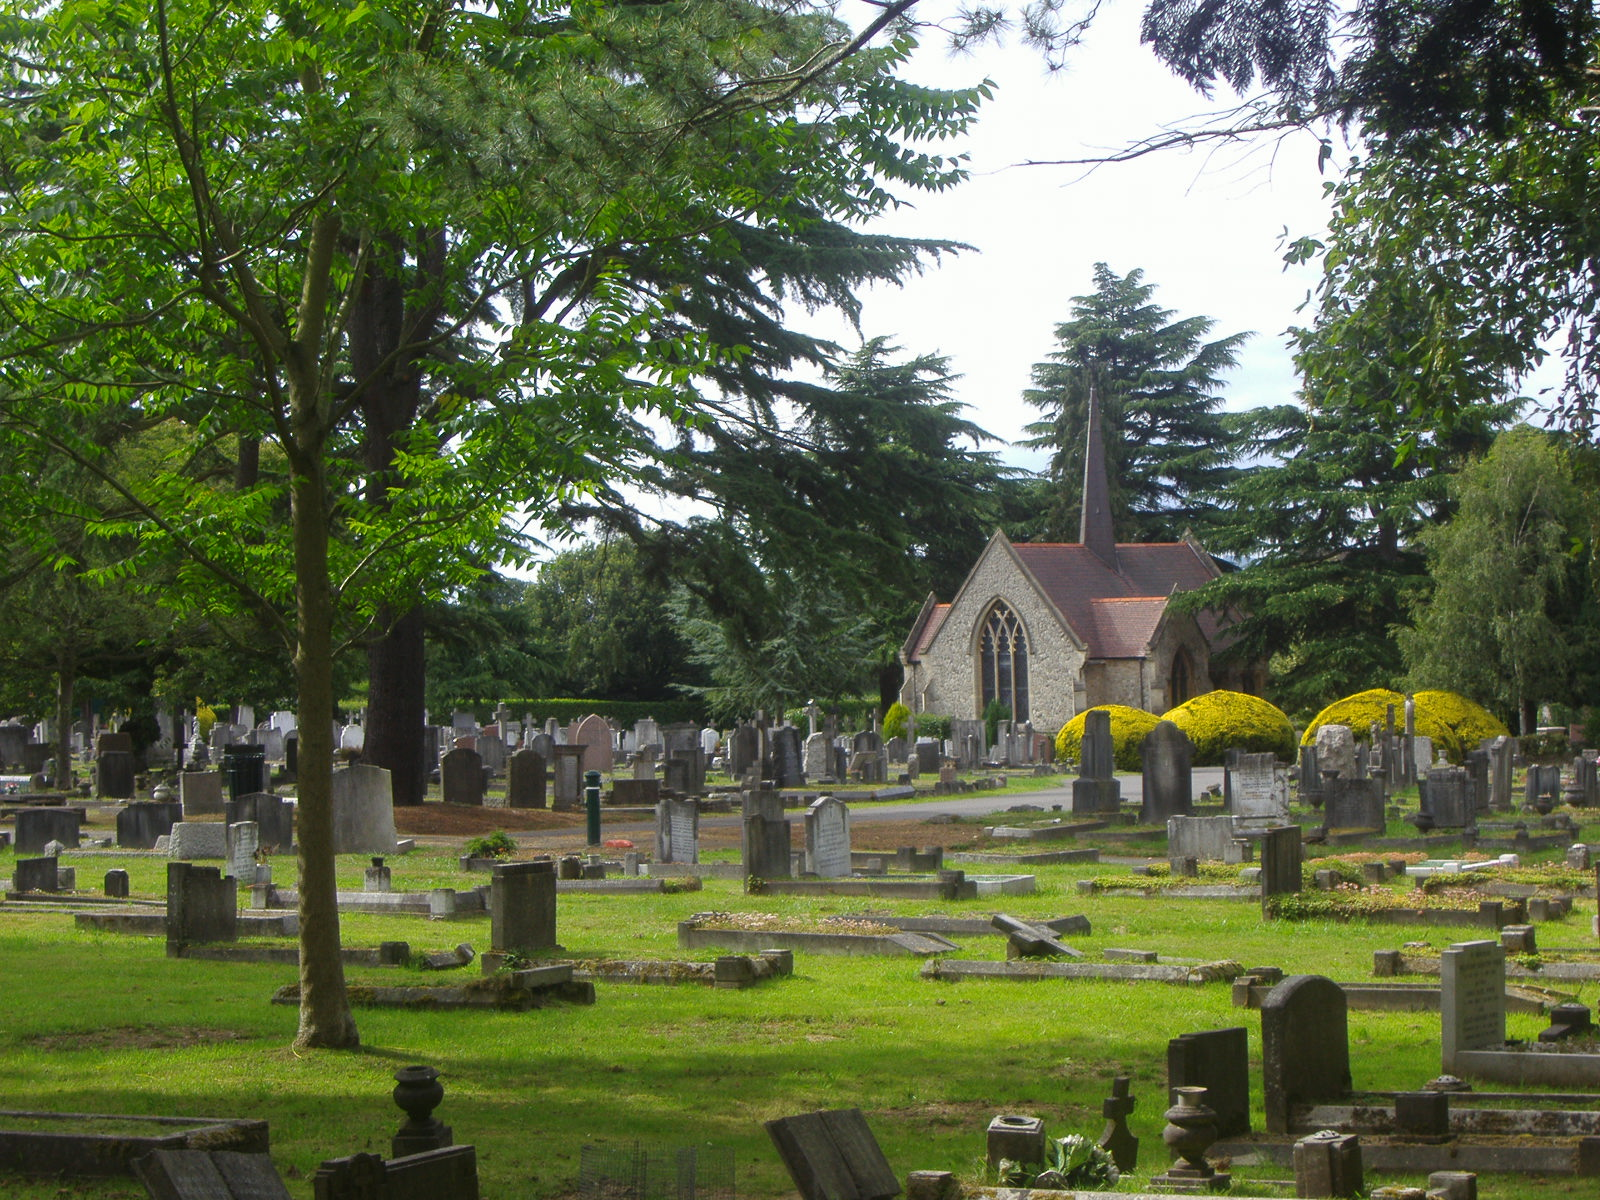 Cemetery image from Wikidata